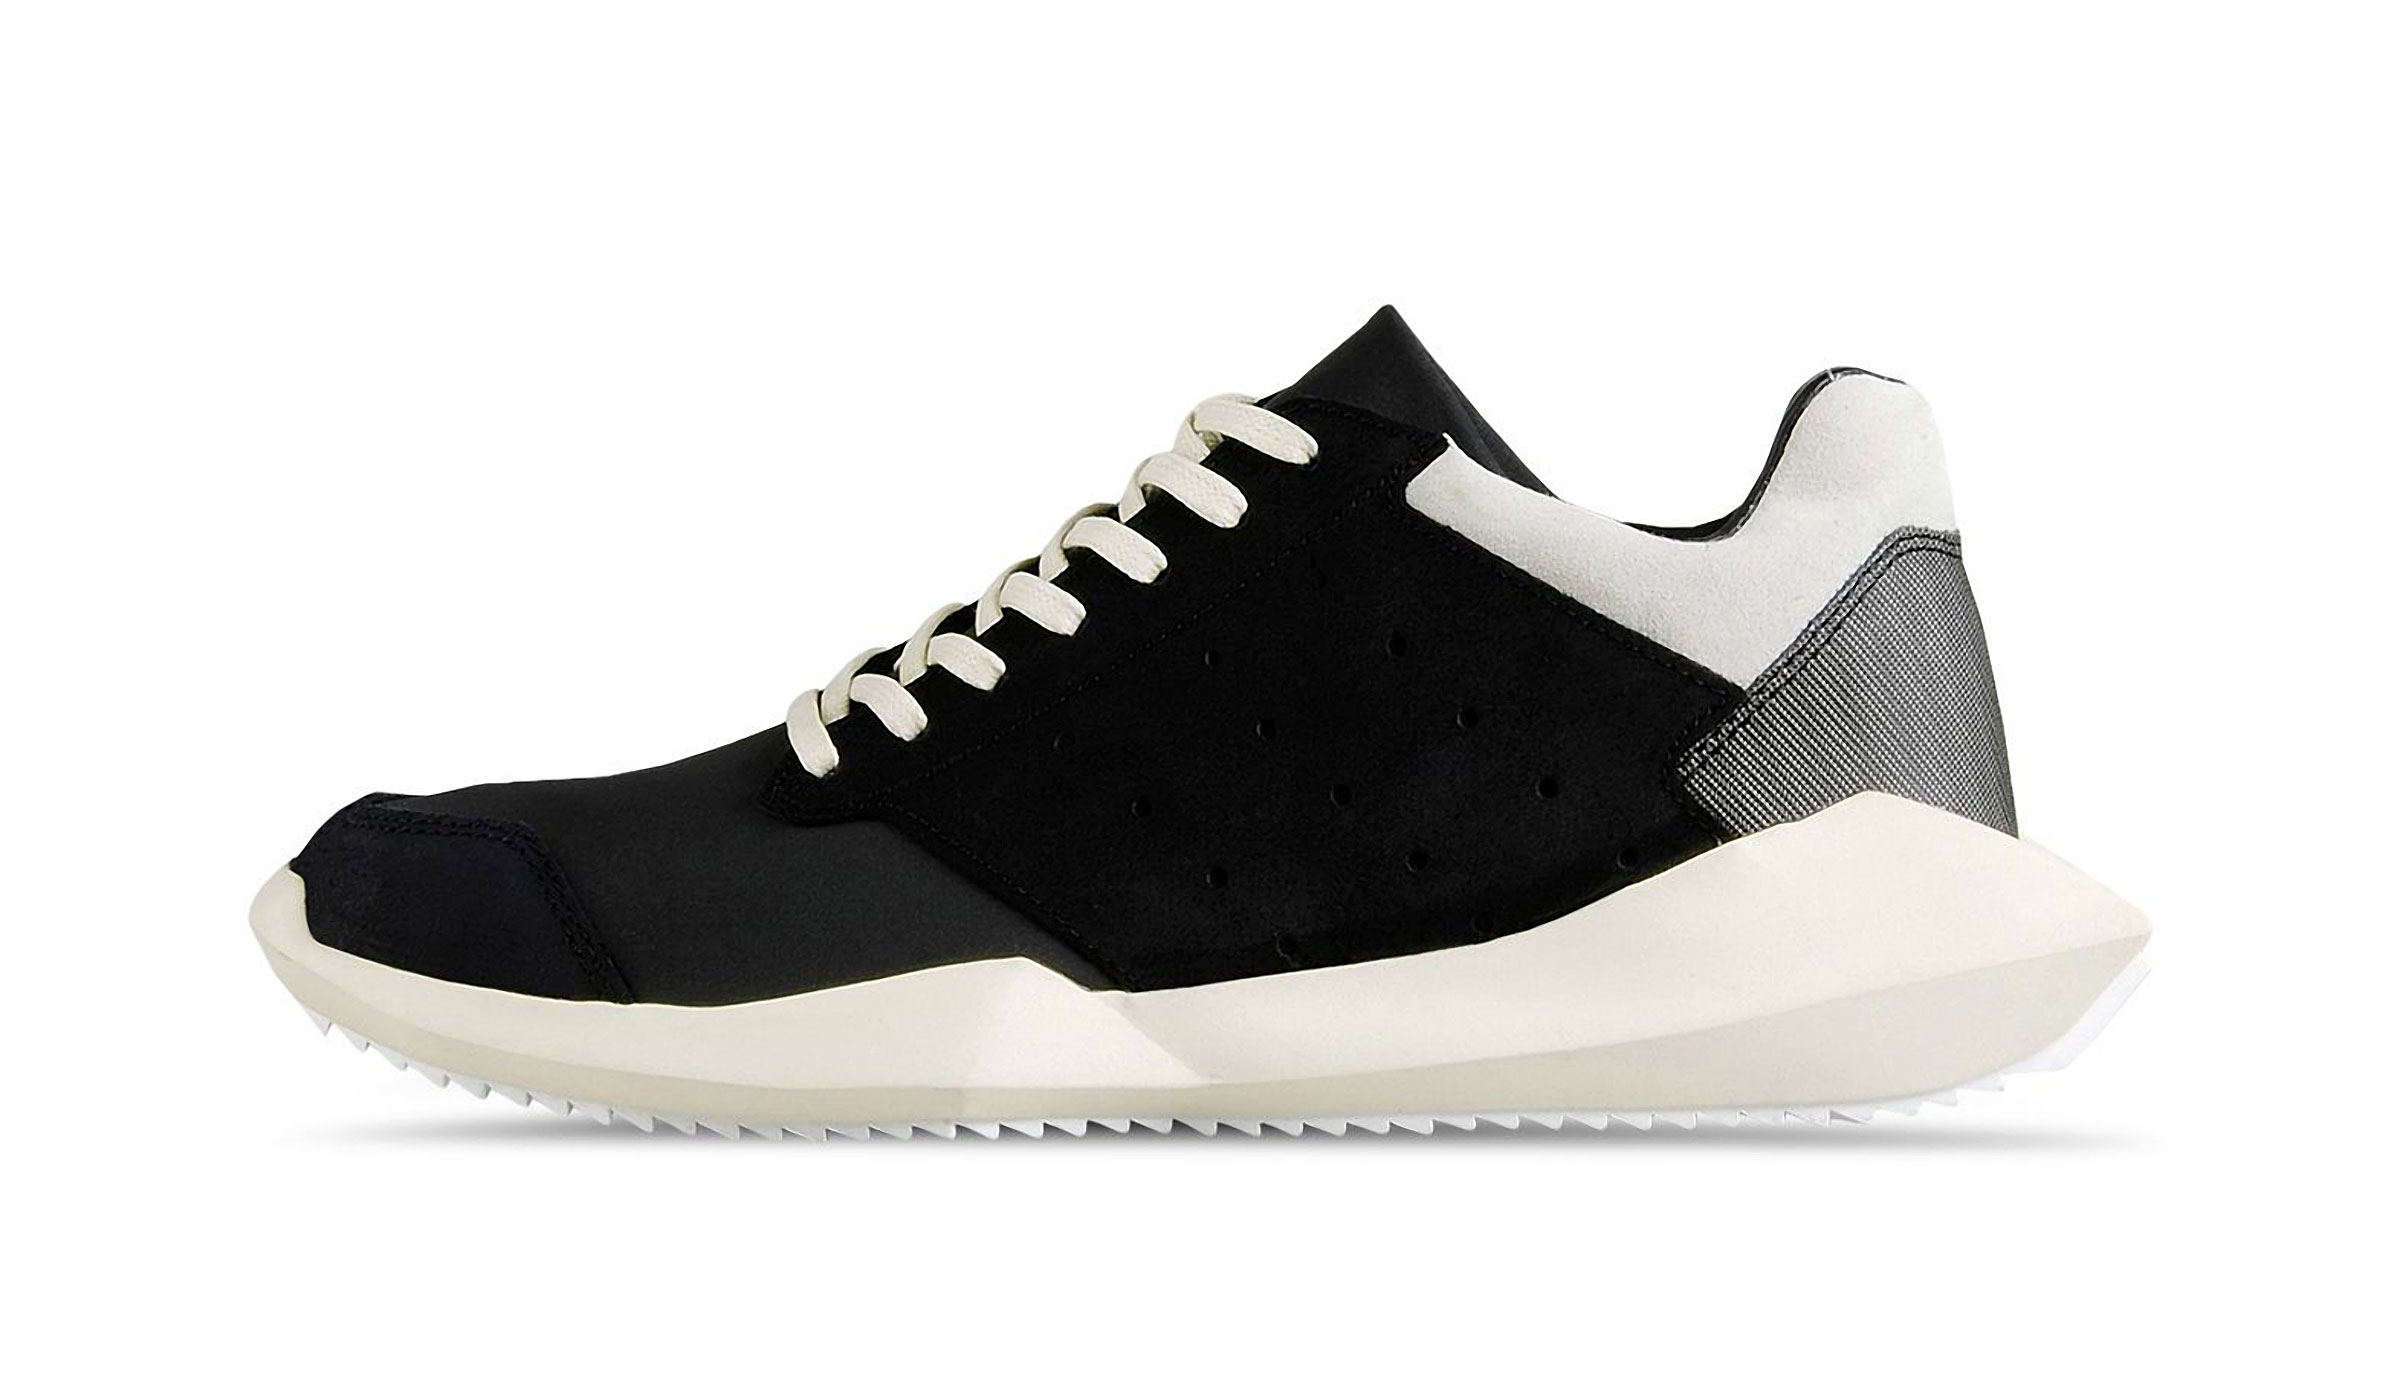 RICK OWENS TECH RUNNER